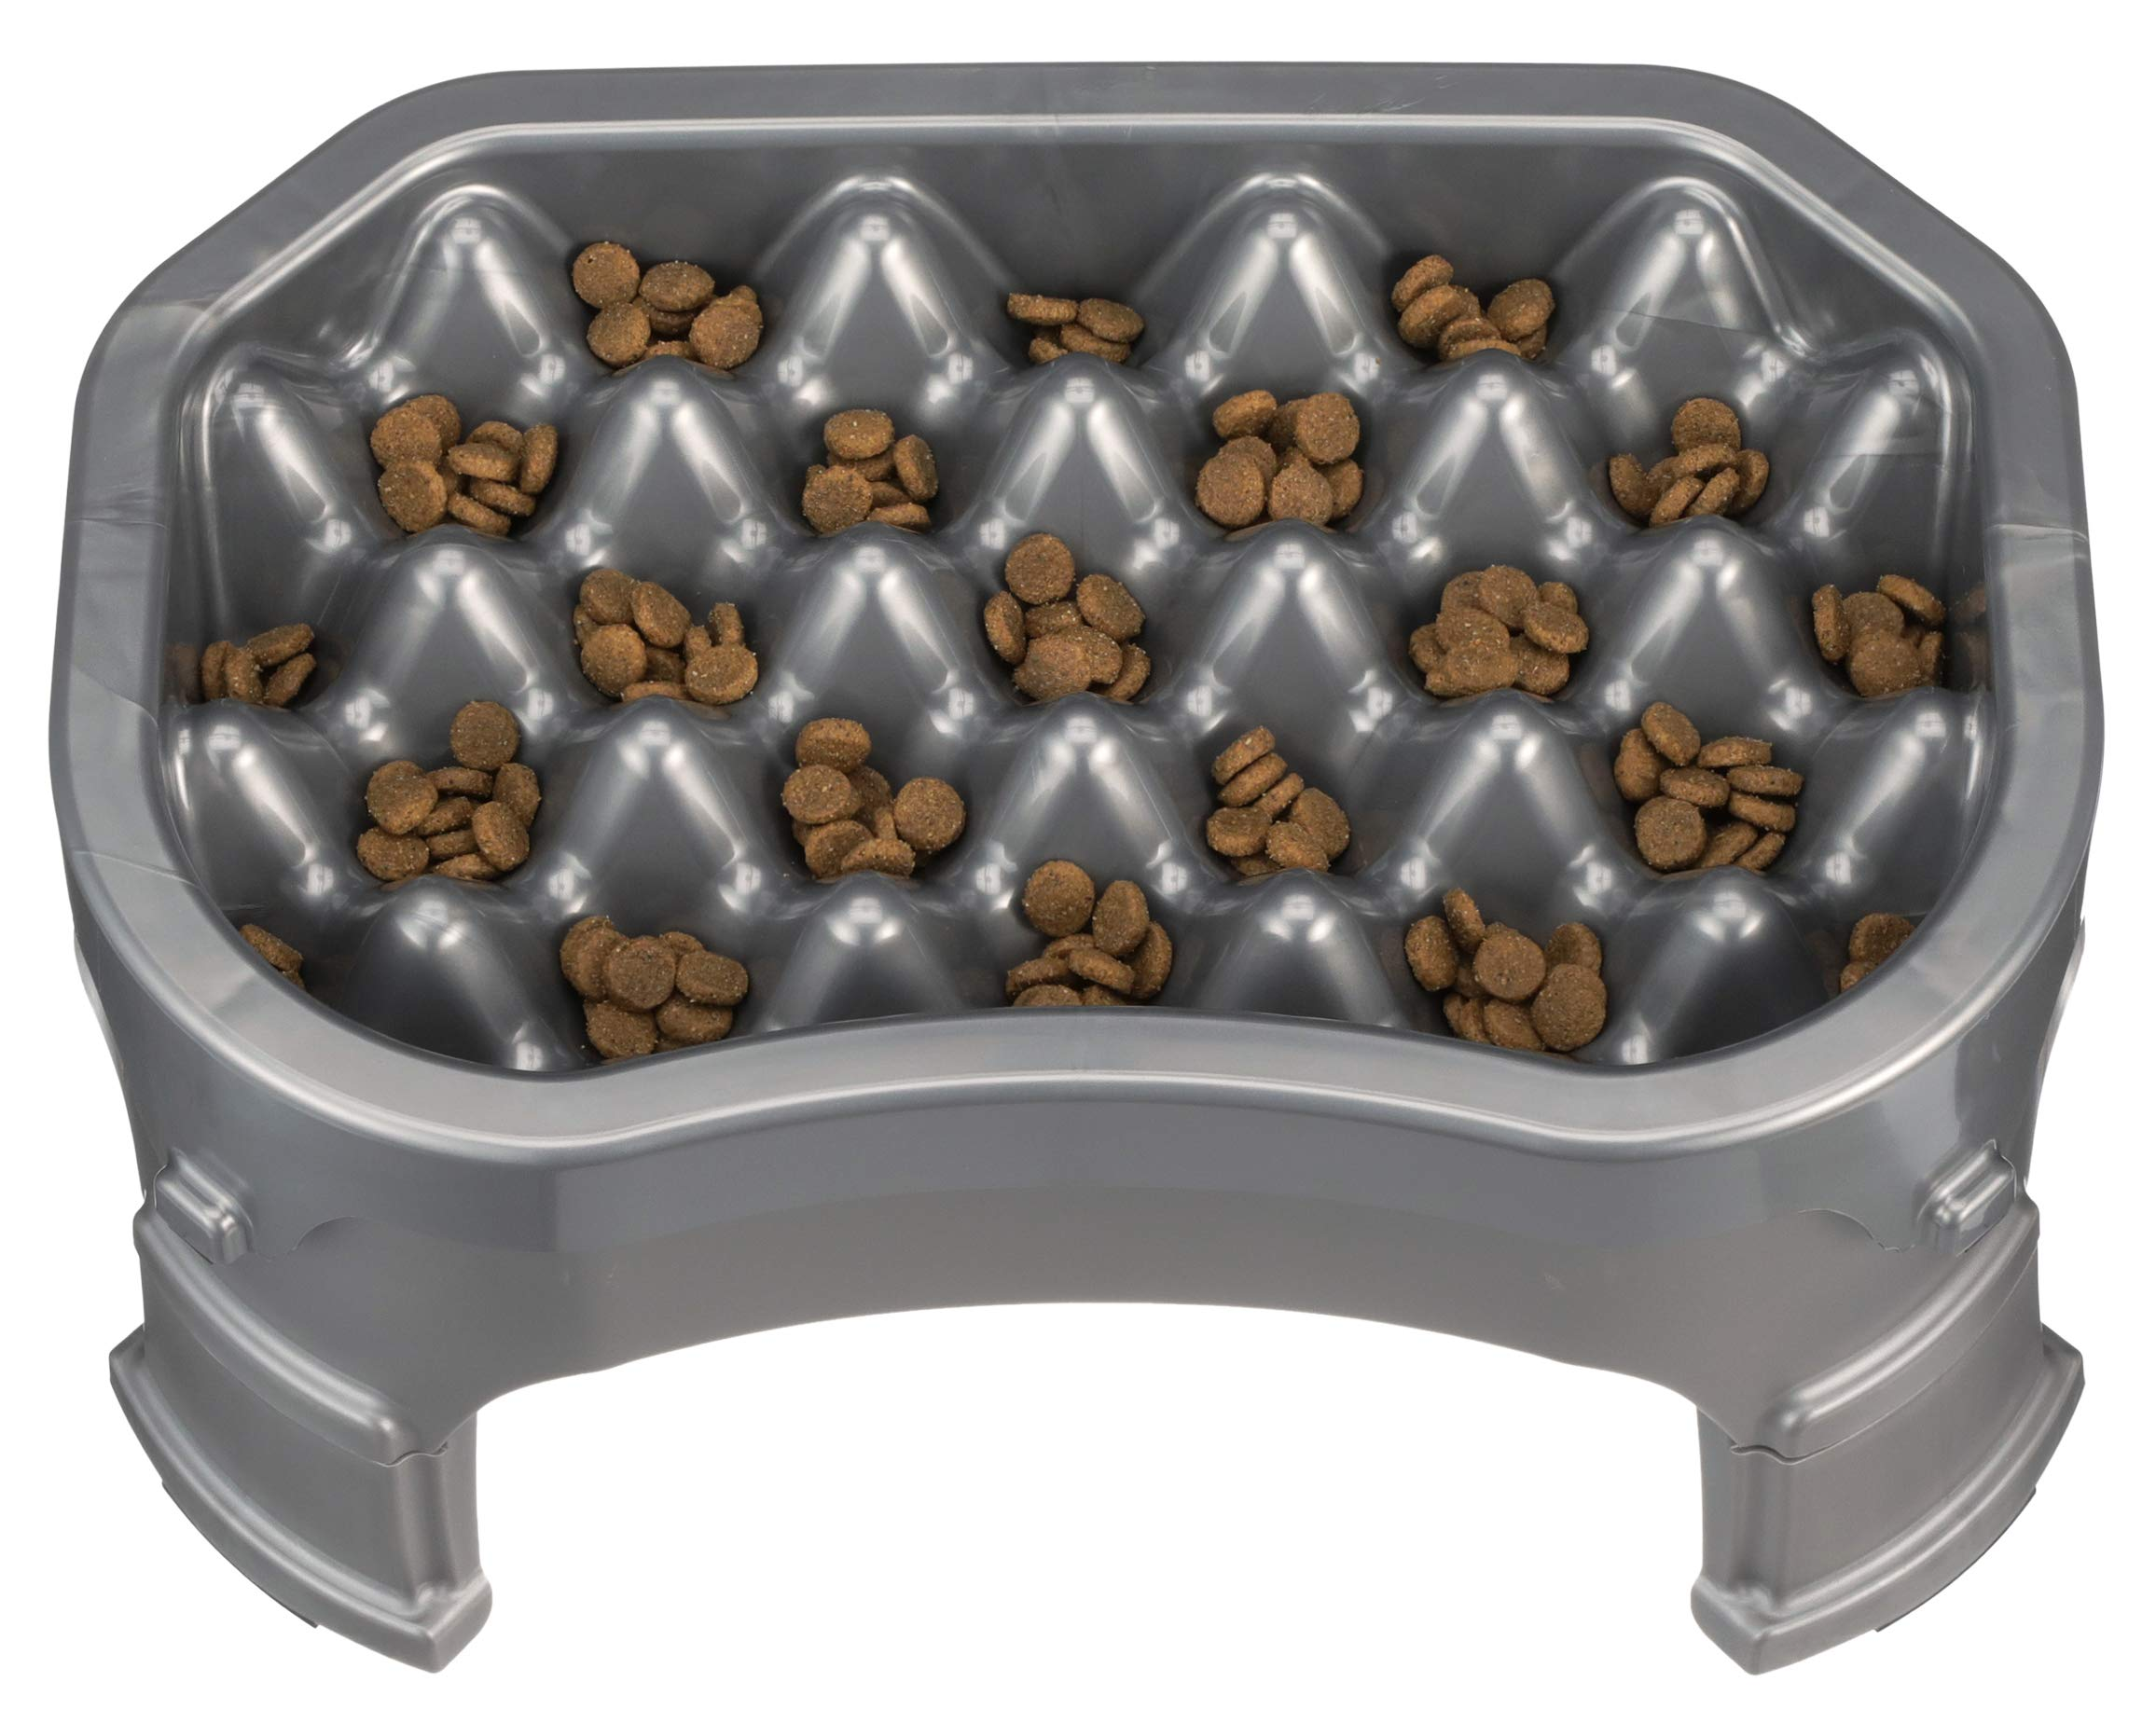 NEATER PET BRANDS - Neater Slow Feeder & Accessories - Gentle Slow Feeding Bowl for Dogs and Cats - Gunmetal Color - Non Skid Feet (Neater Slow Feeder + Big Bowl Base + Legs, Gunmetal)